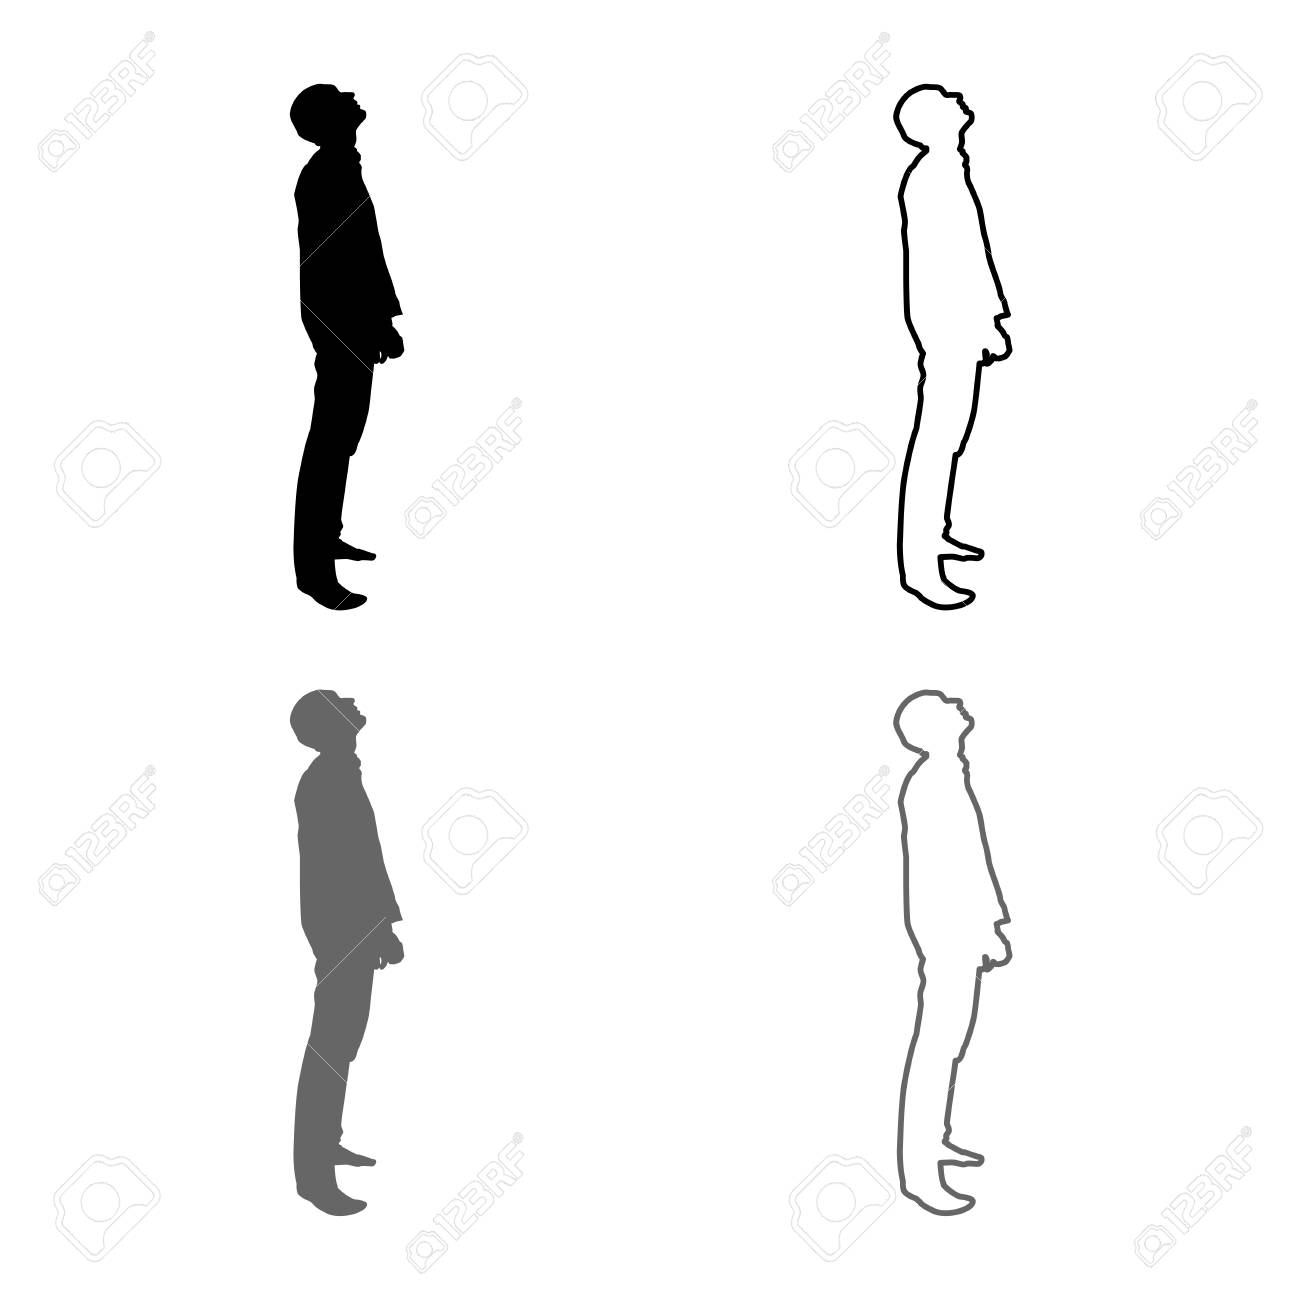 simple outline of a person